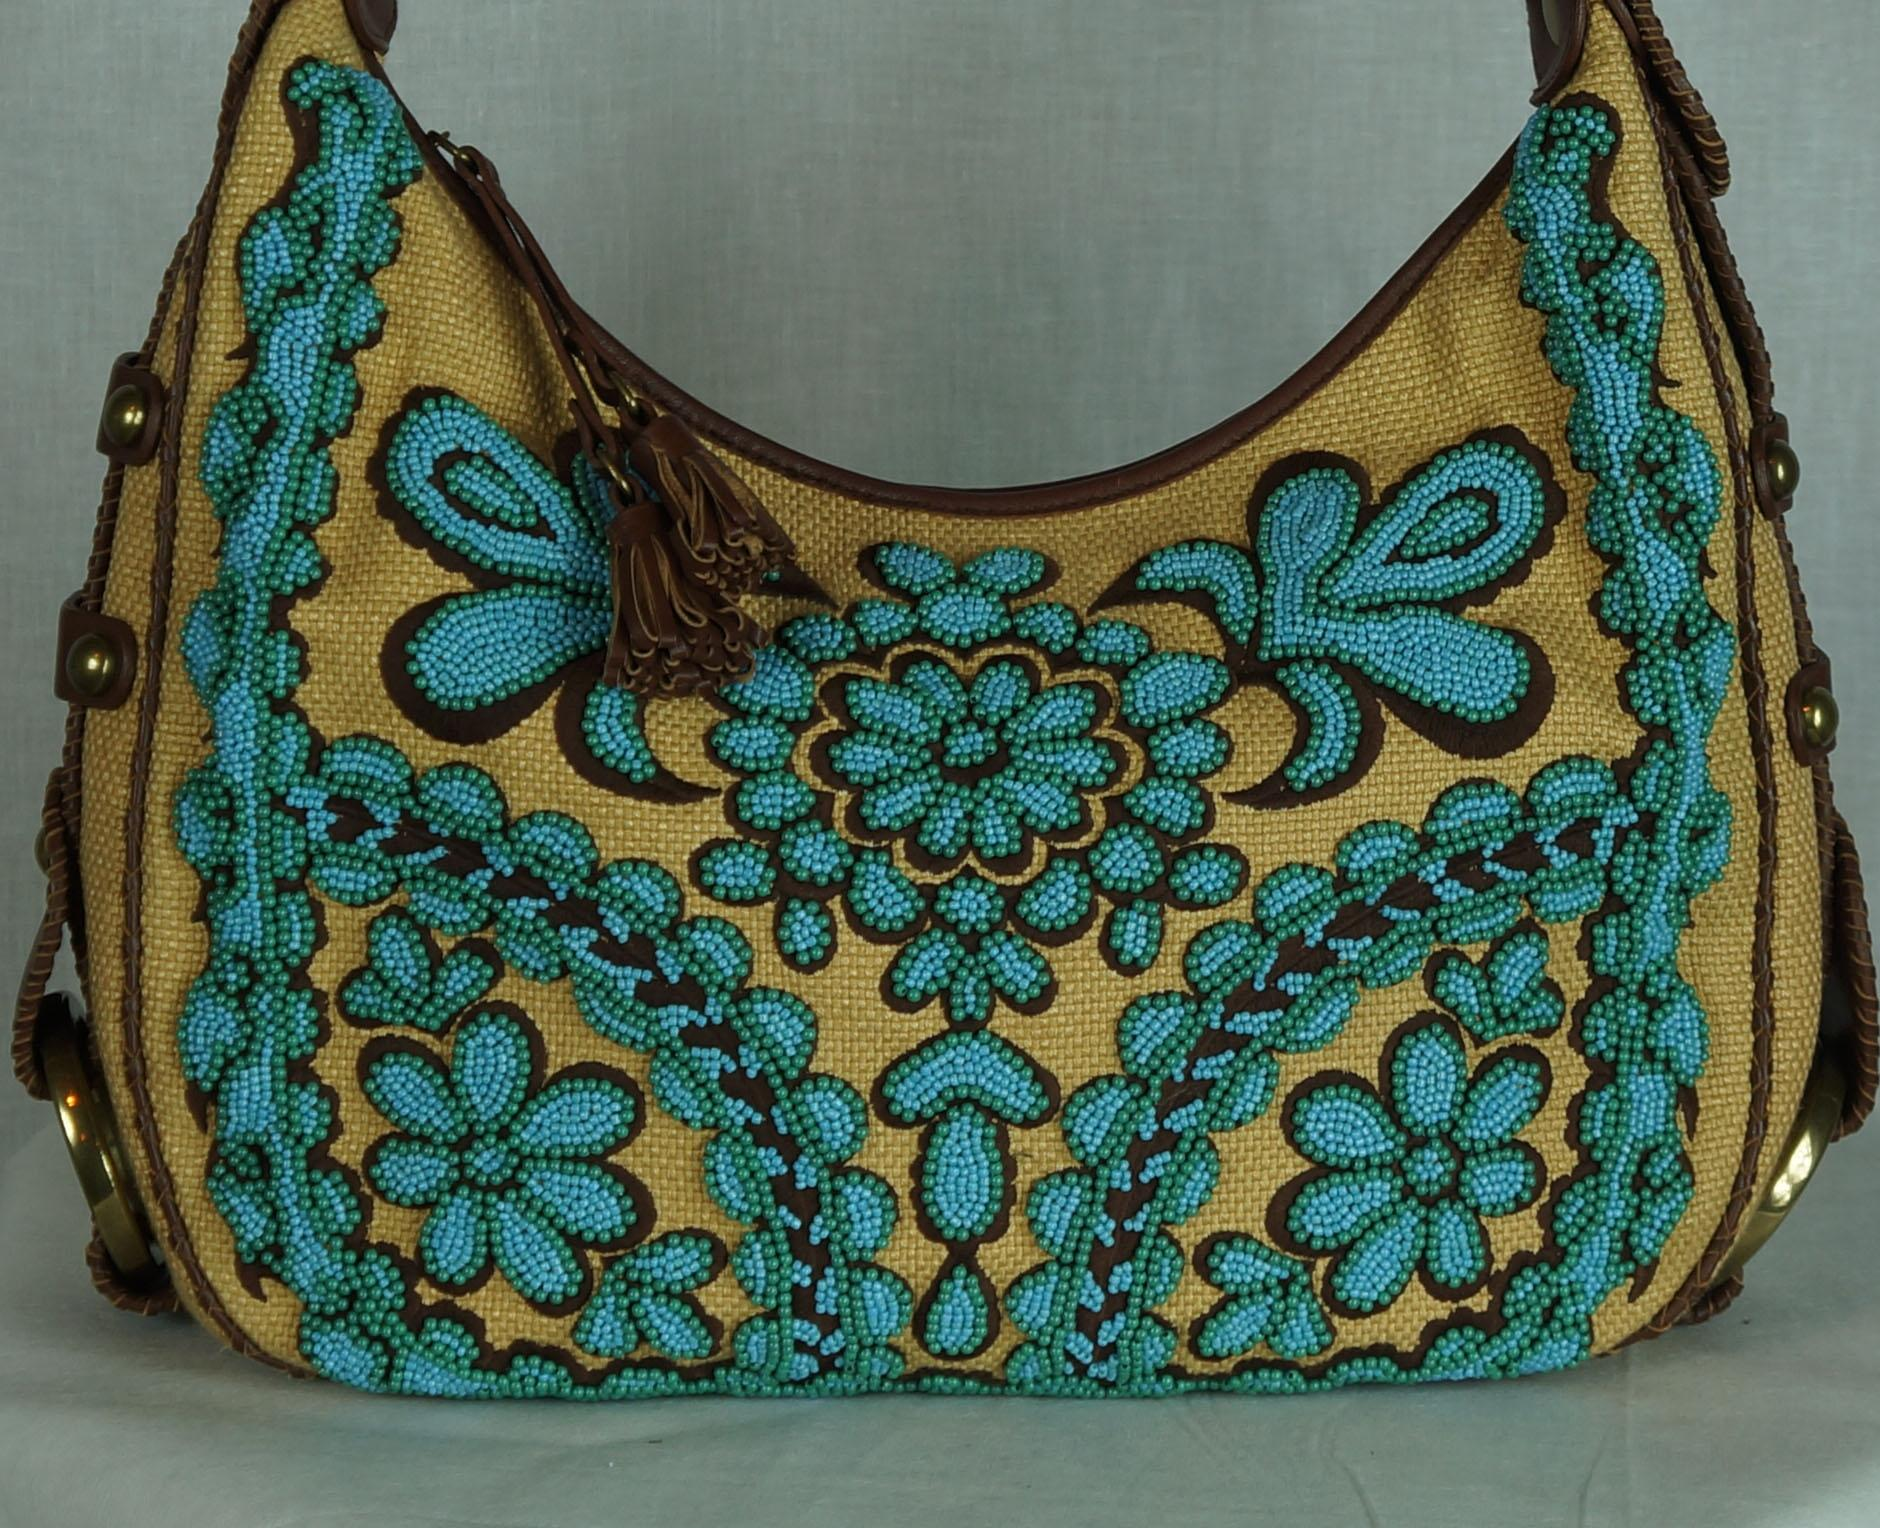 Isabella Fiore Beaded Embroidered Handbag Hobo Bag | Hobos on Sale